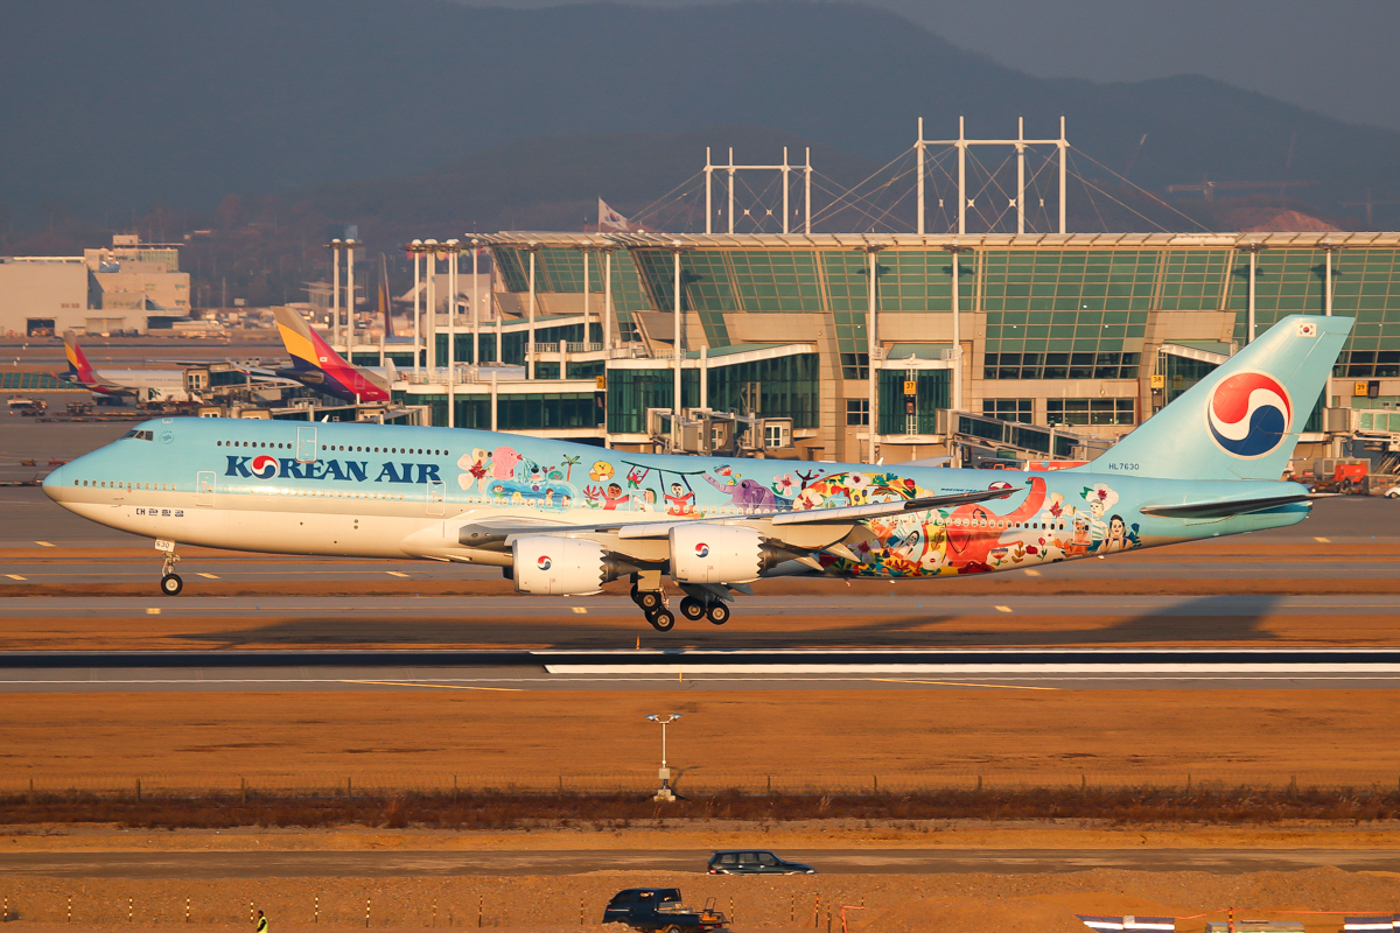 Korean Air's Special Liveries